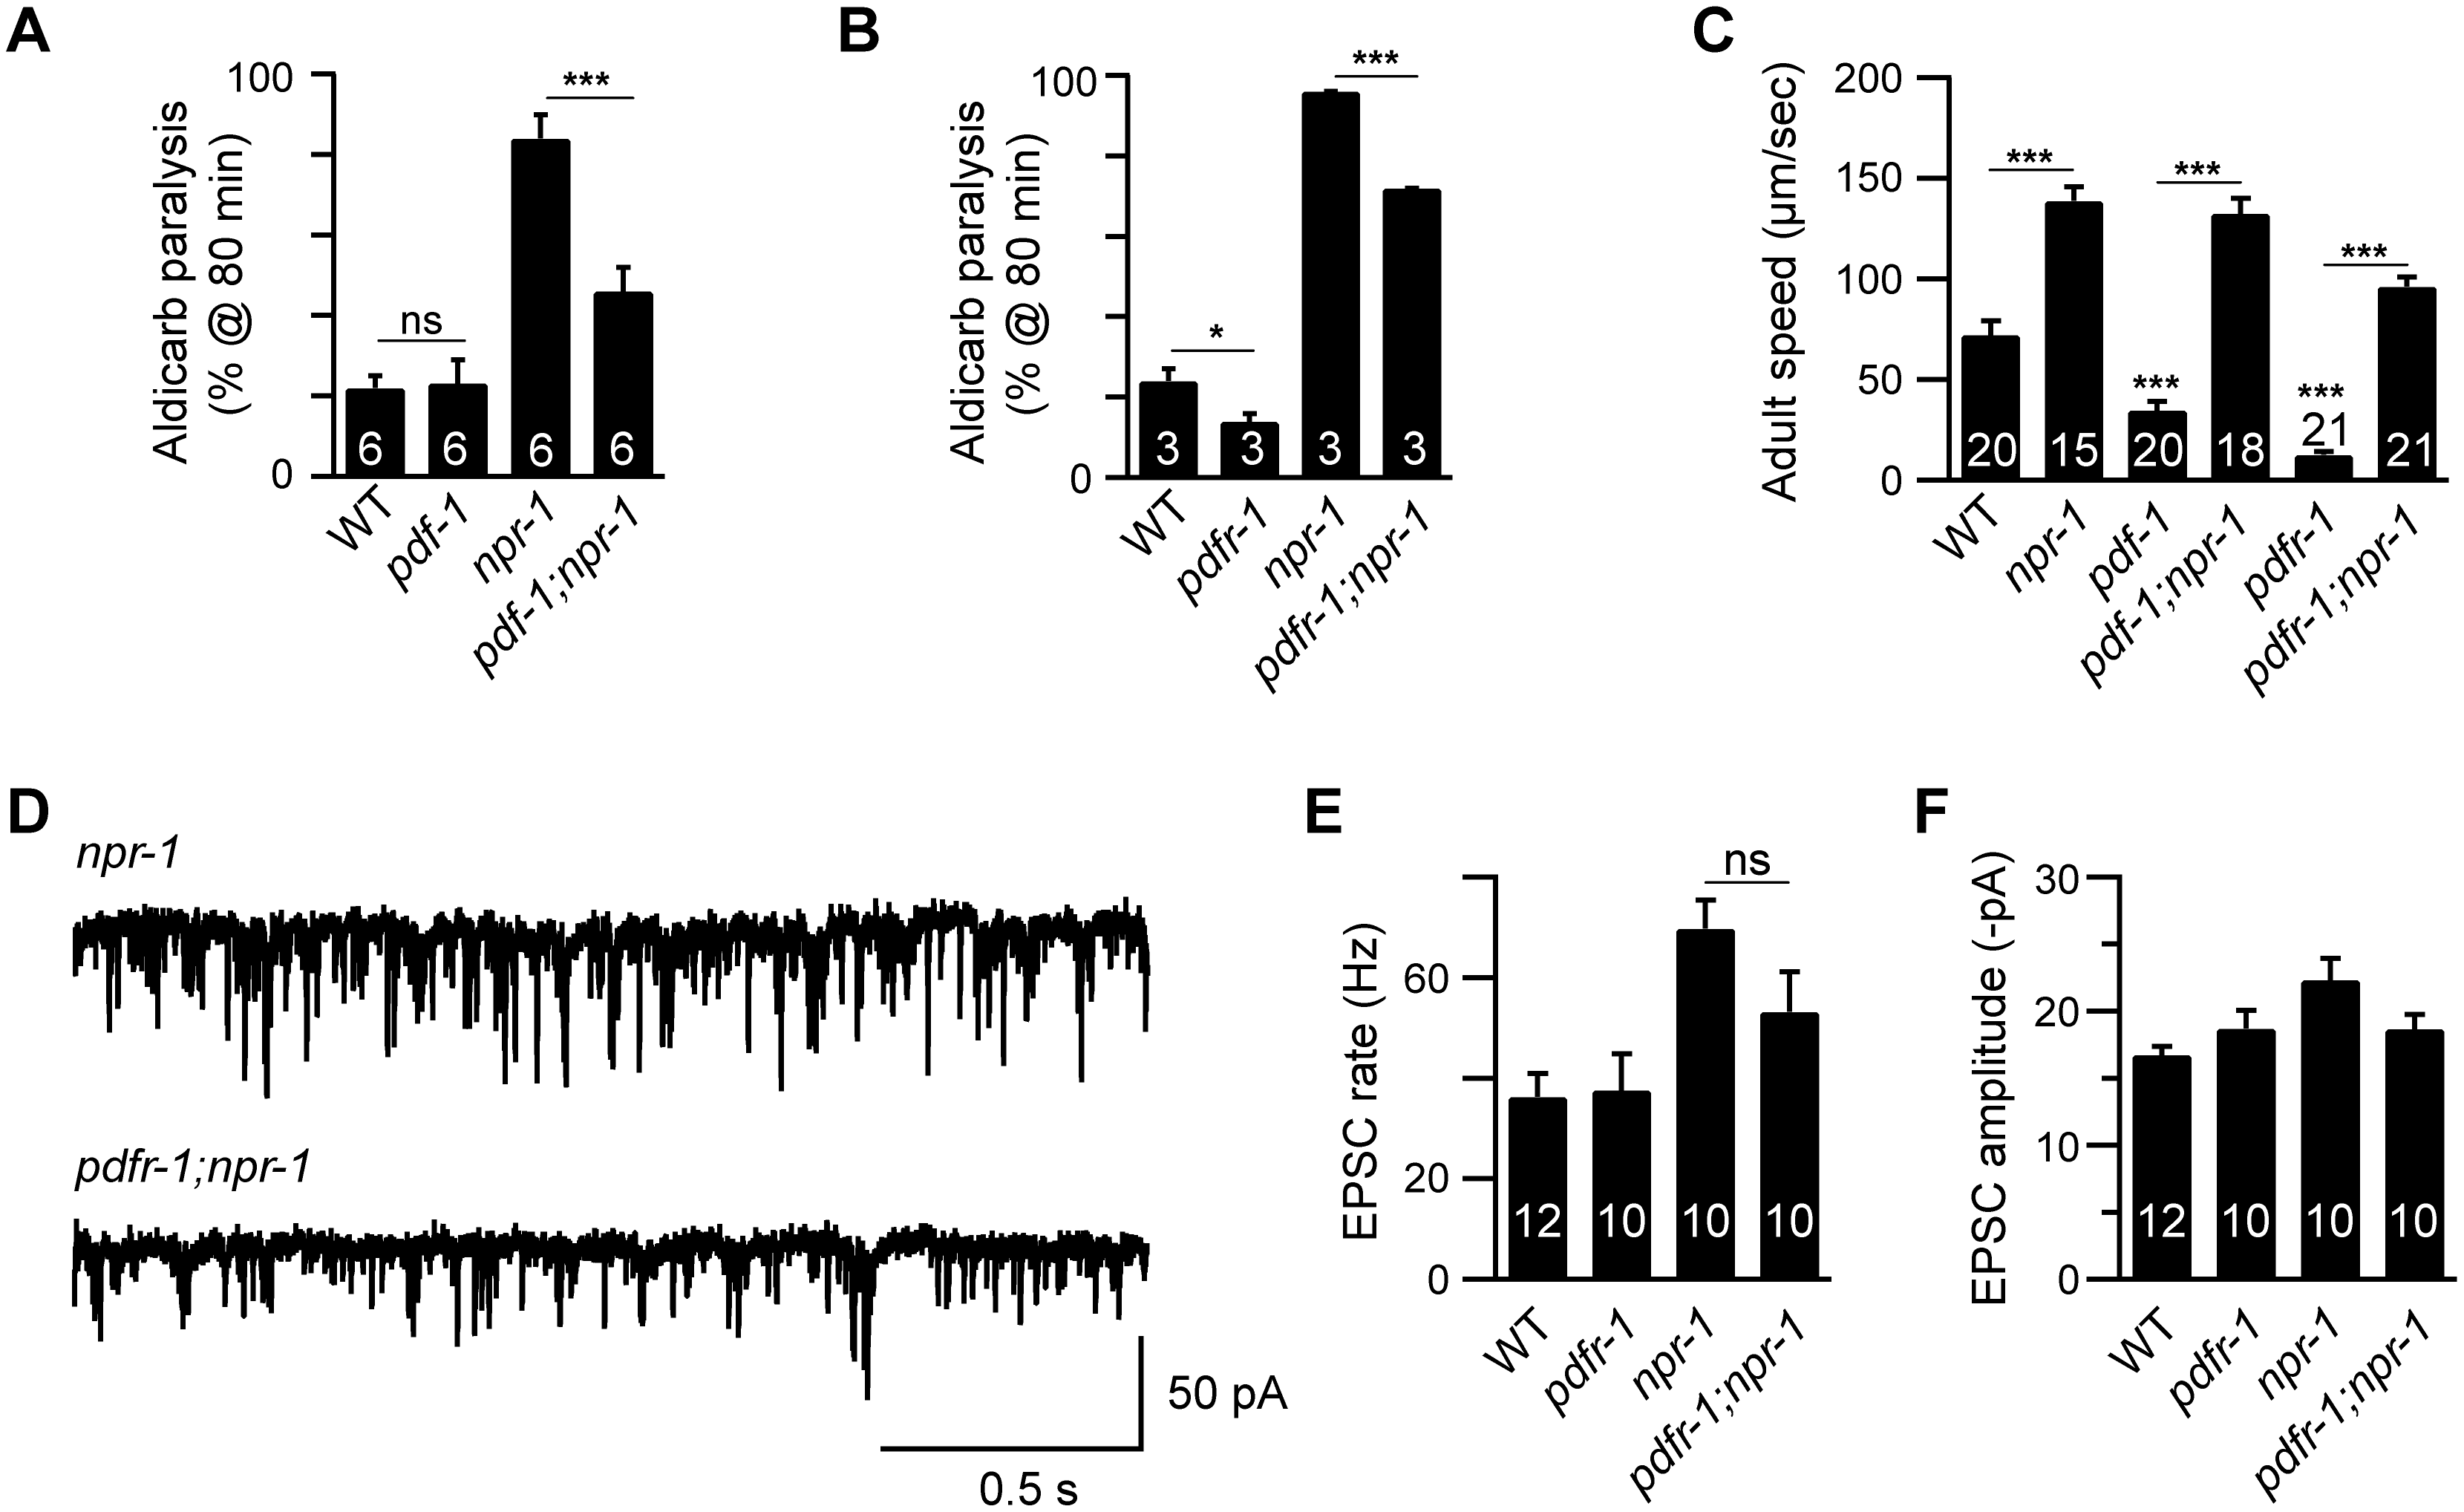 Inactivating PDF signaling does not prevent aroused locomotion in <i>npr-1</i> adults.